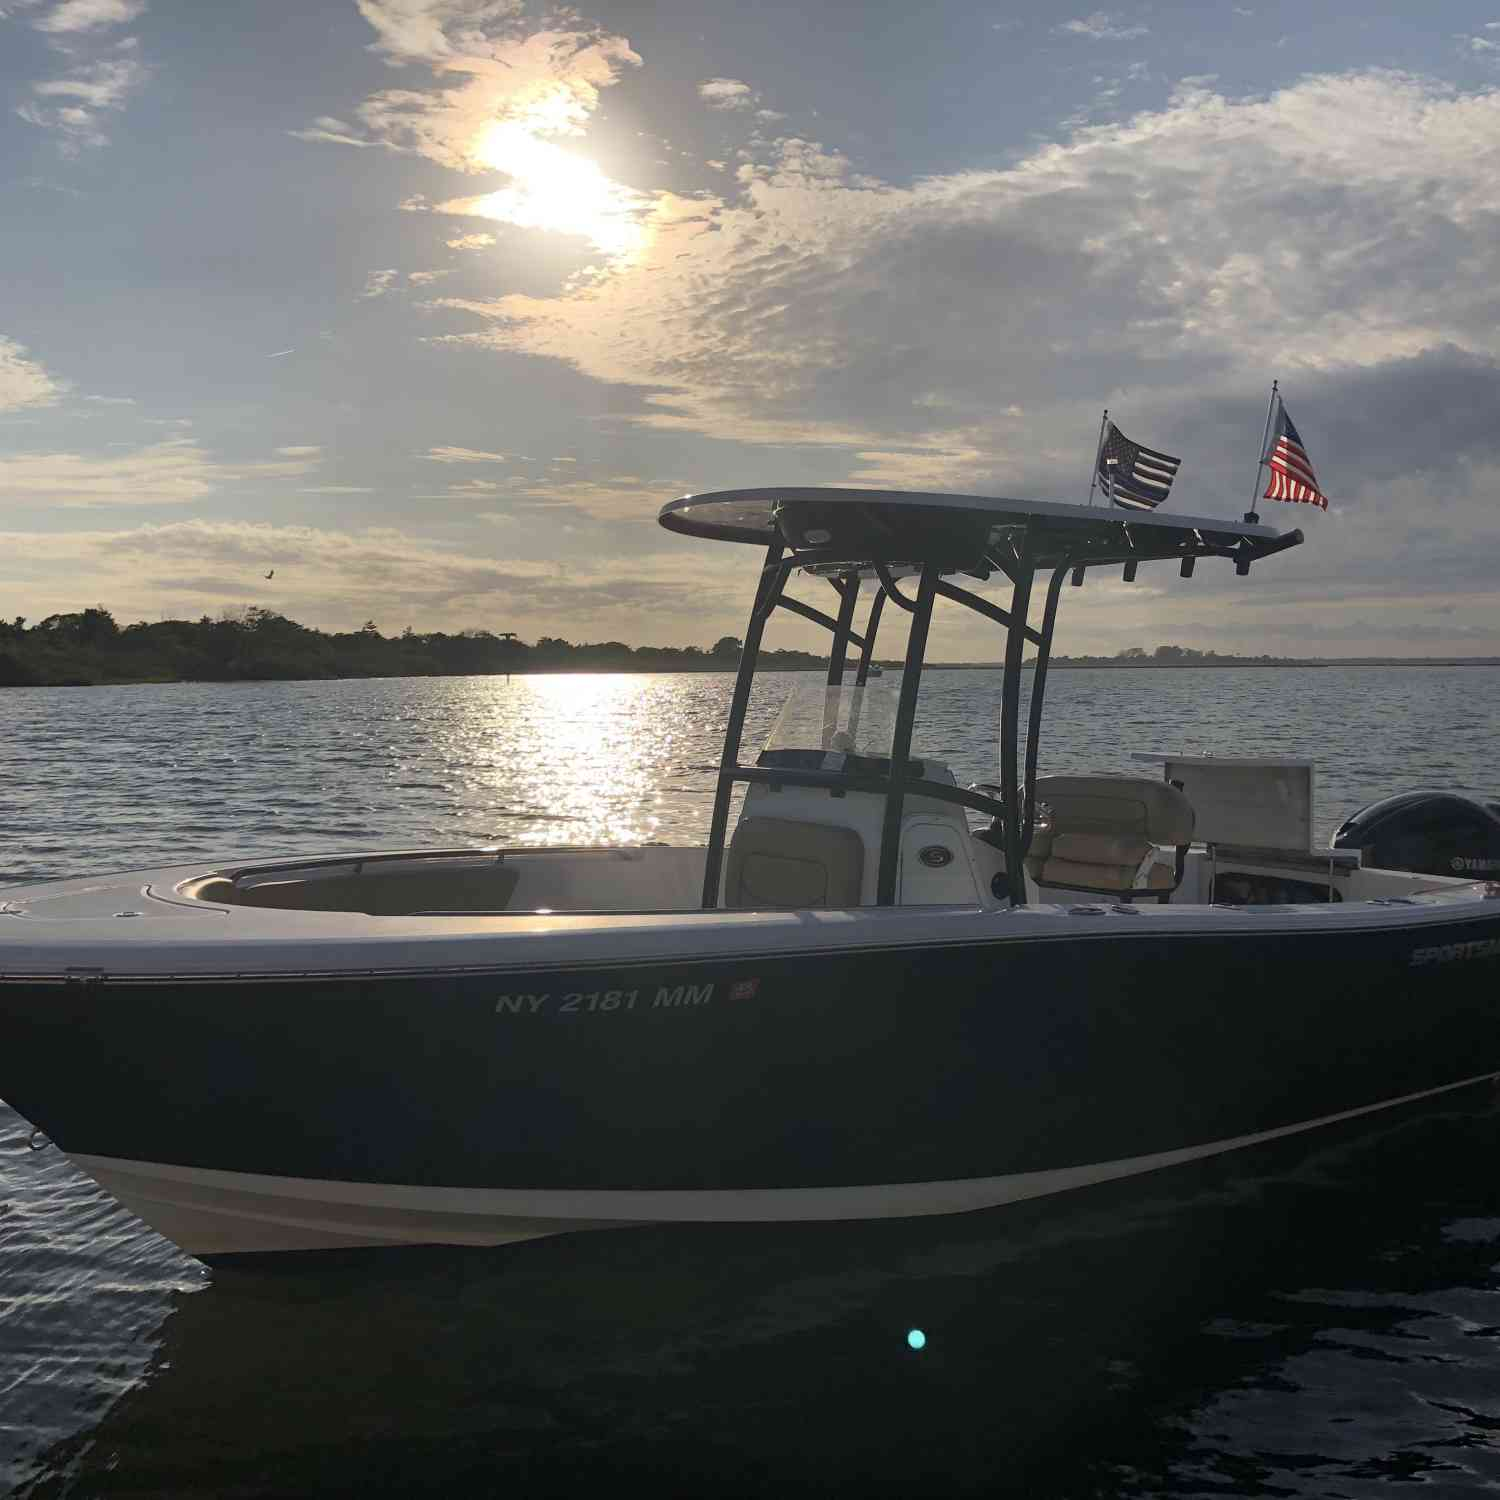 Title: My happy place - On board their Sportsman Heritage 231 Center Console - Location: Babylon NY. Participating in the Photo Contest #SportsmanFebruary2020